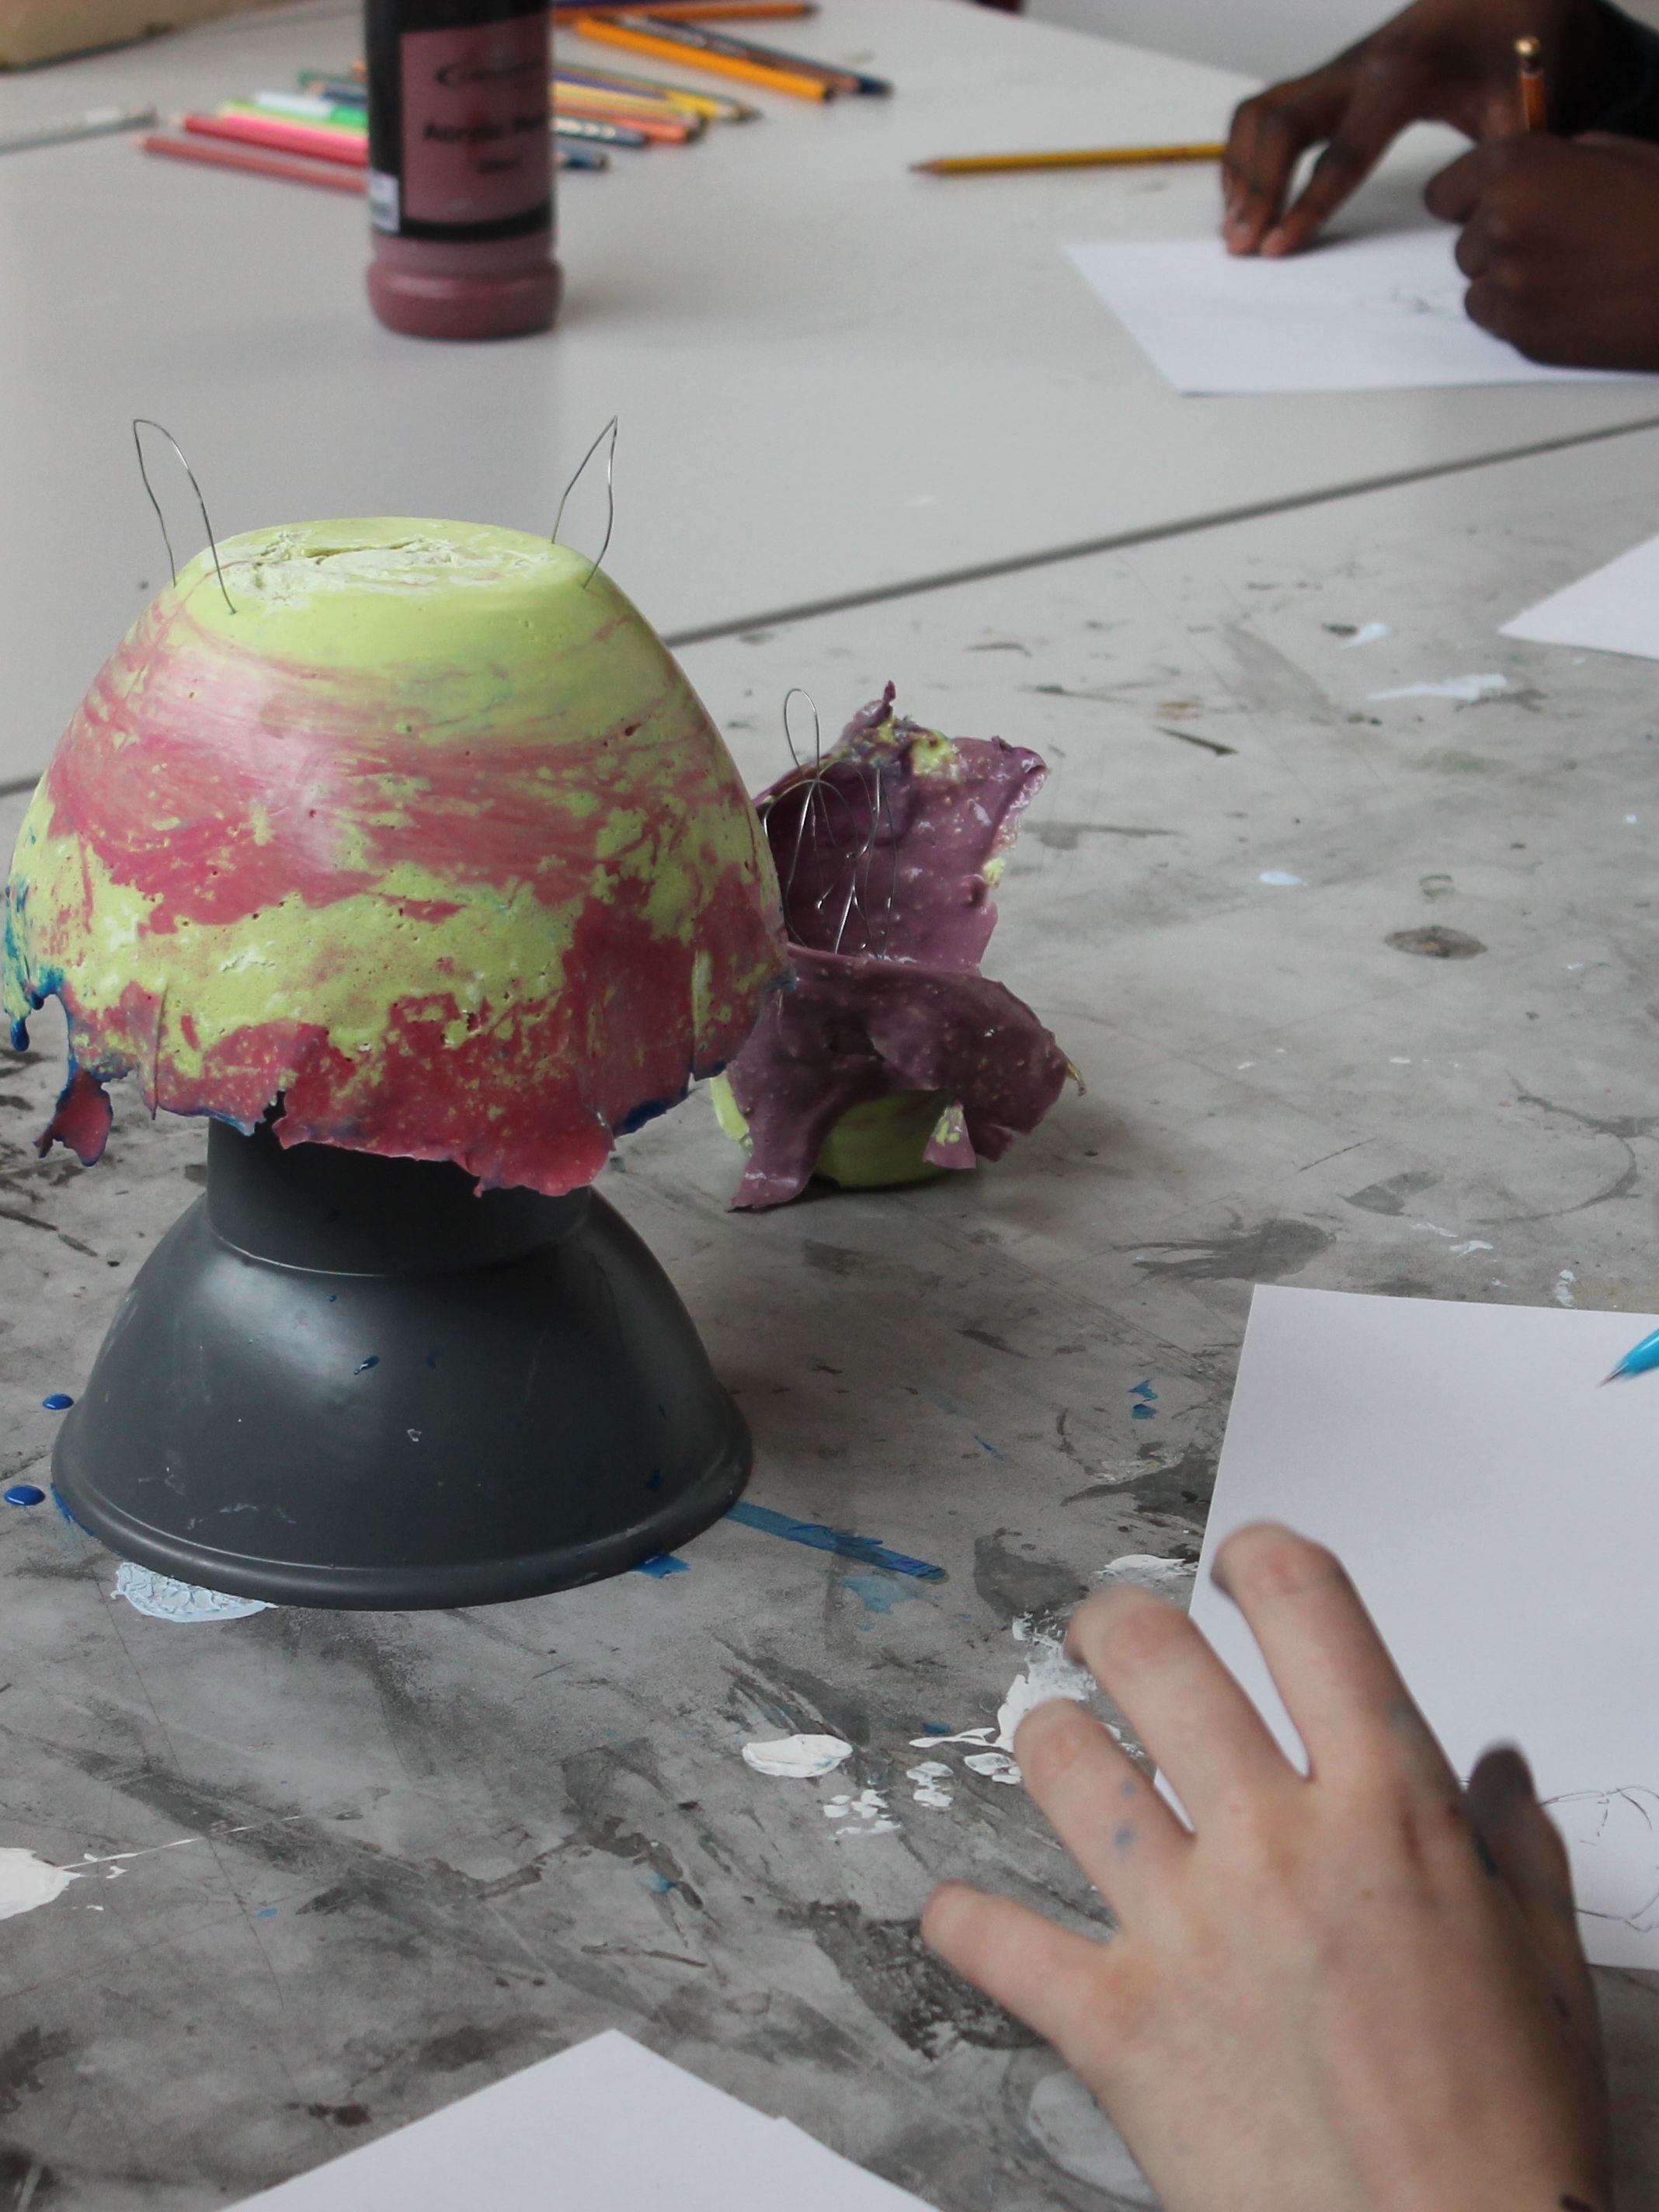 hands gesturing towards a yellow and red sculpture on table. It looks like the sculpture is being observed and drawn.